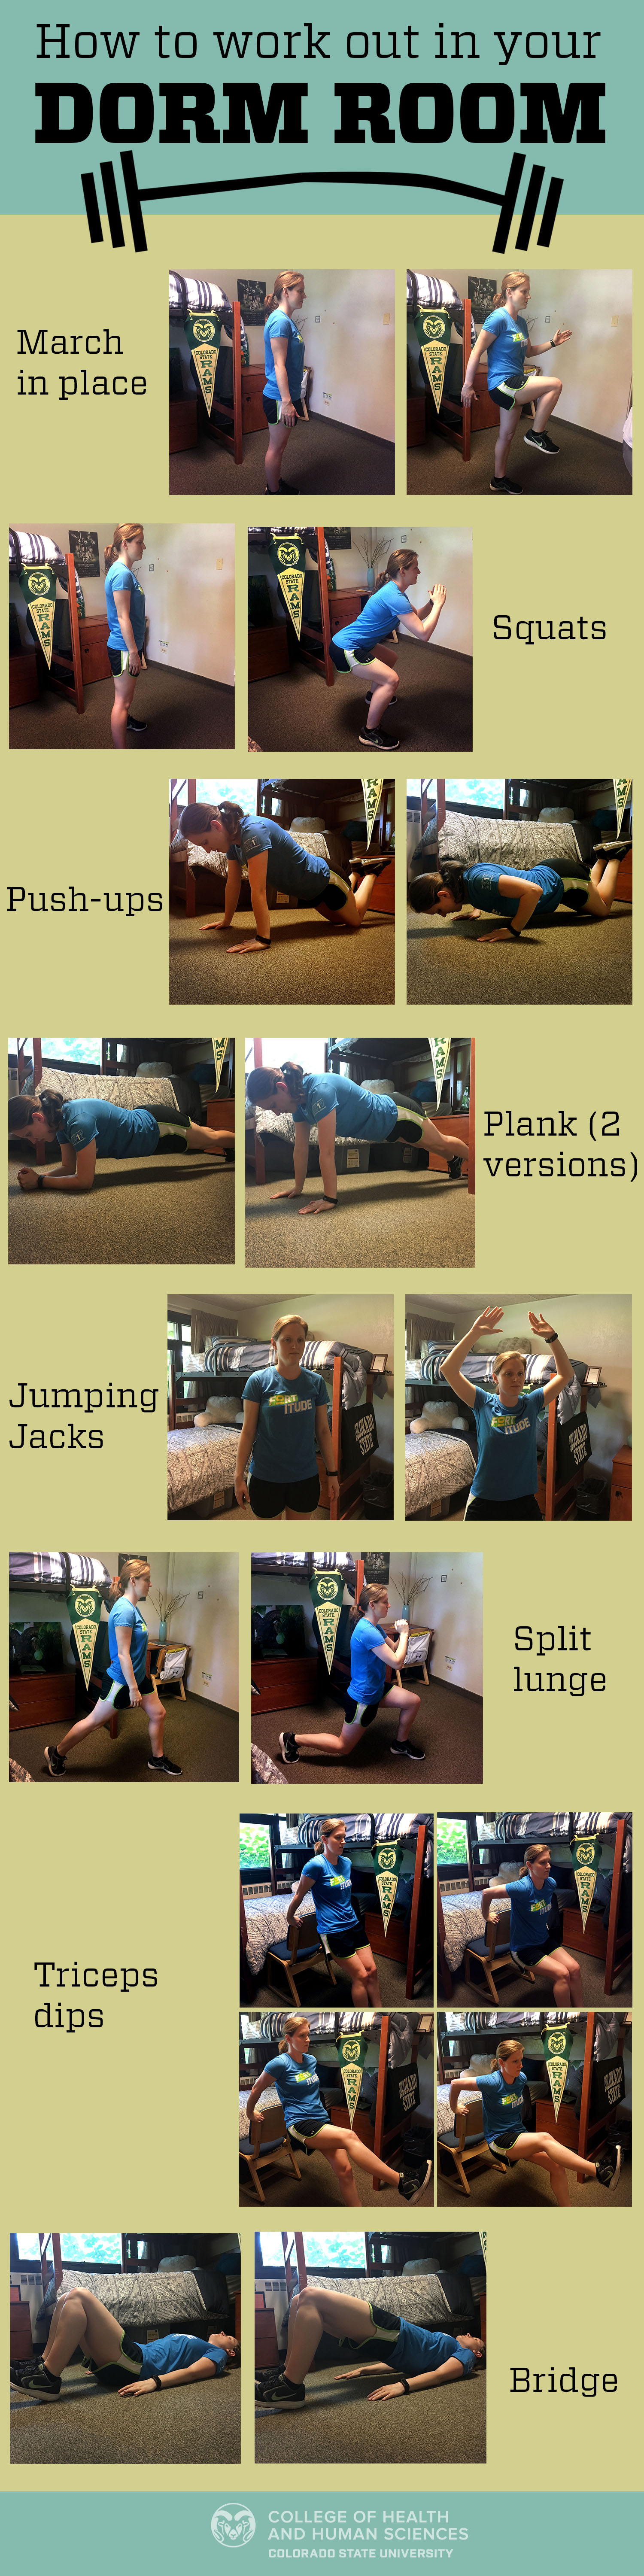 Marvelous Video: How To Work Out In Your Dorm Room. Thereu0027s No Space Too Small Part 31